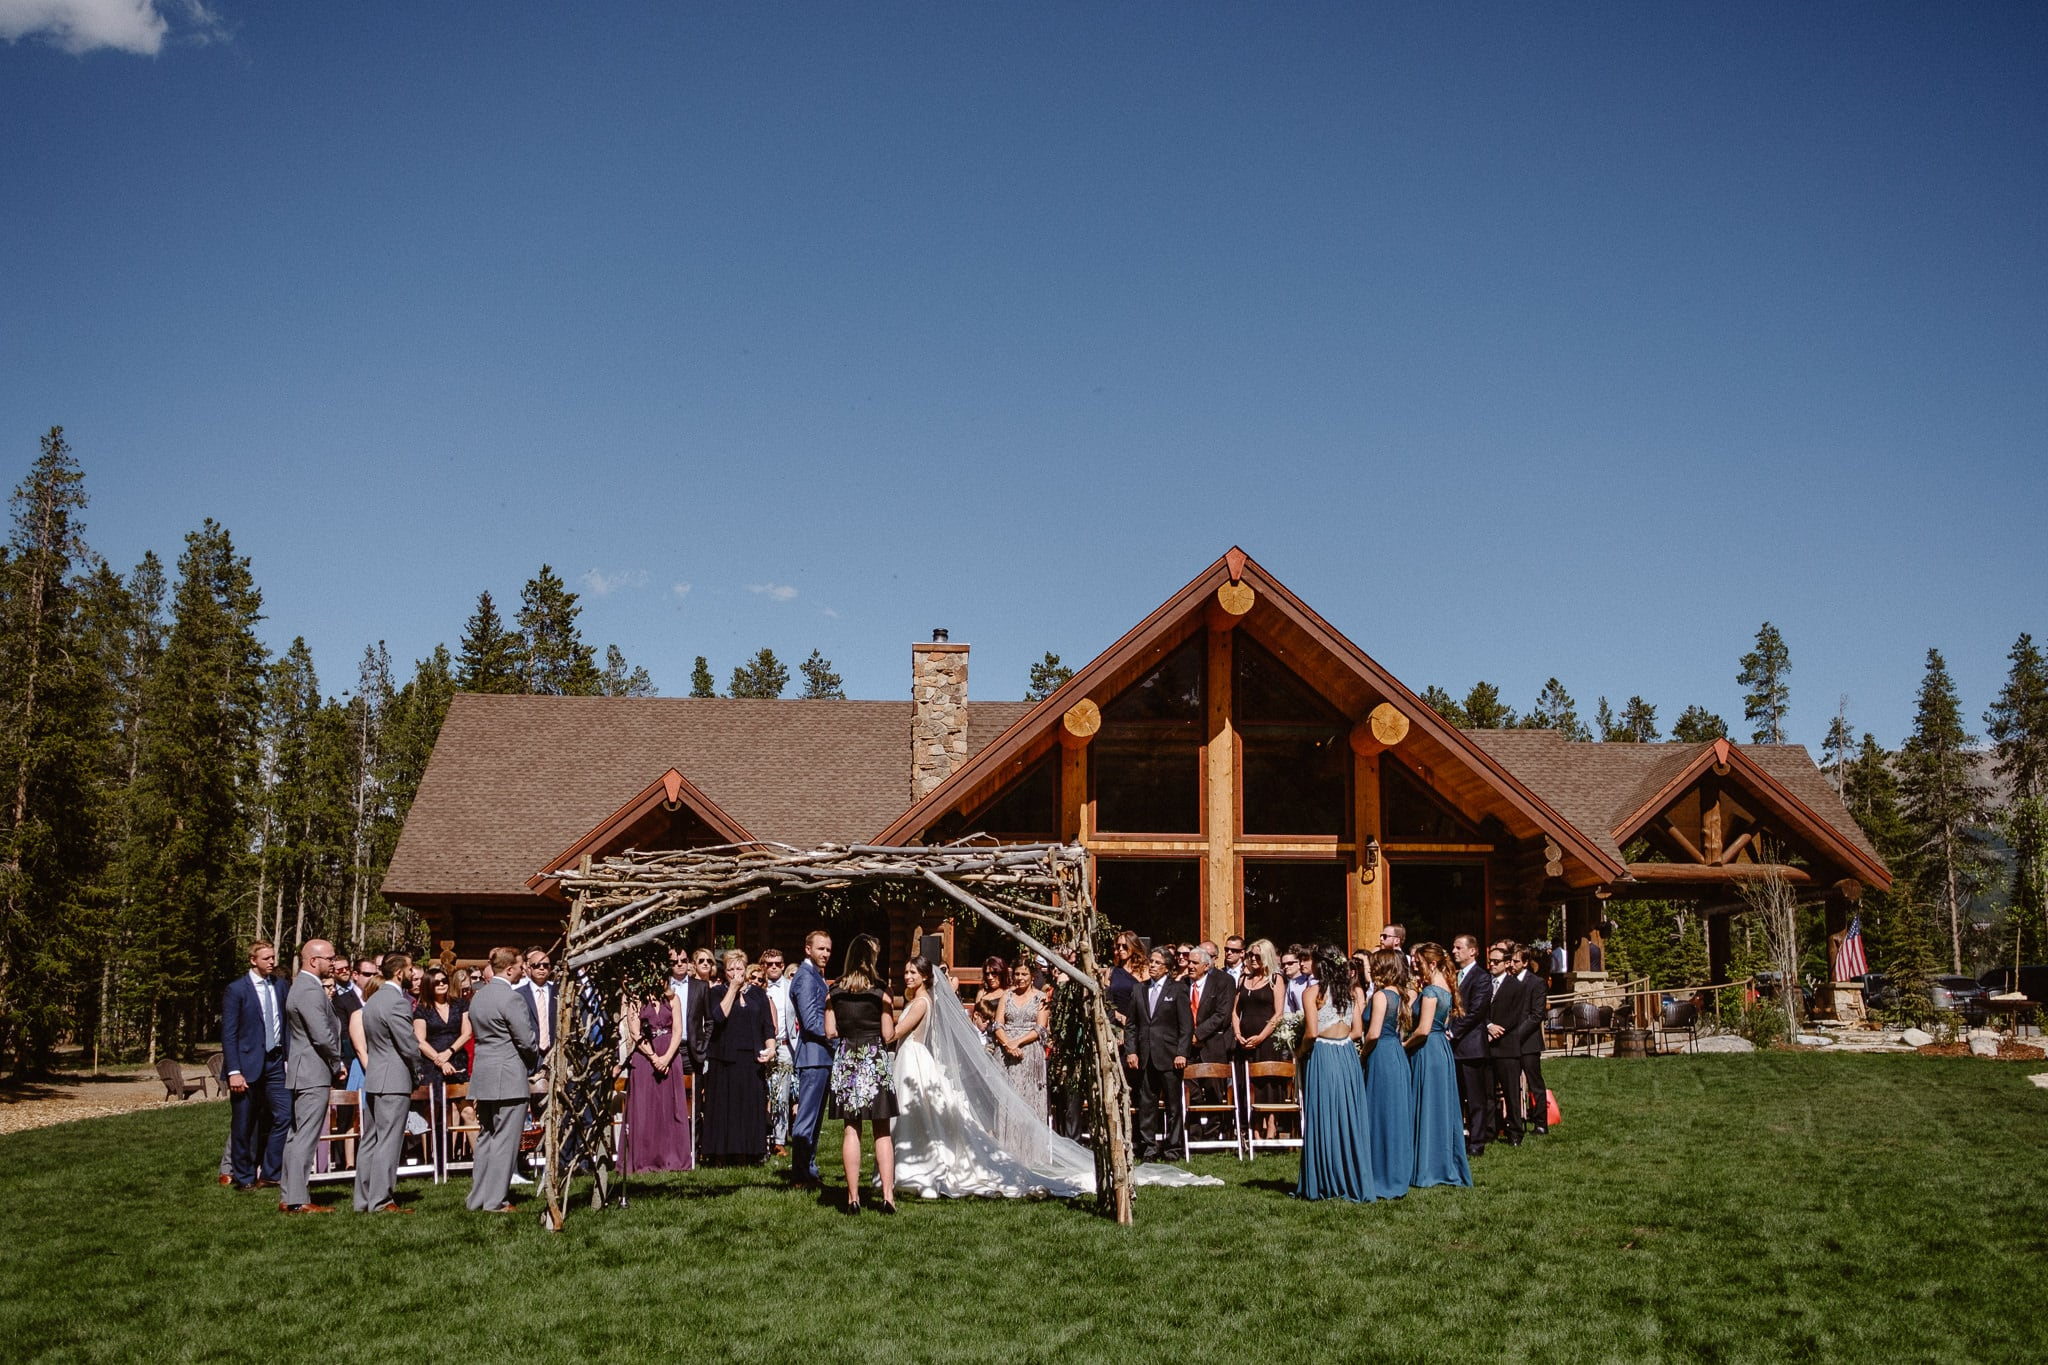 Breckenridge Nordic Center wedding venue, outdoor log cabin wedding ceremony, Colorado wedding photographer